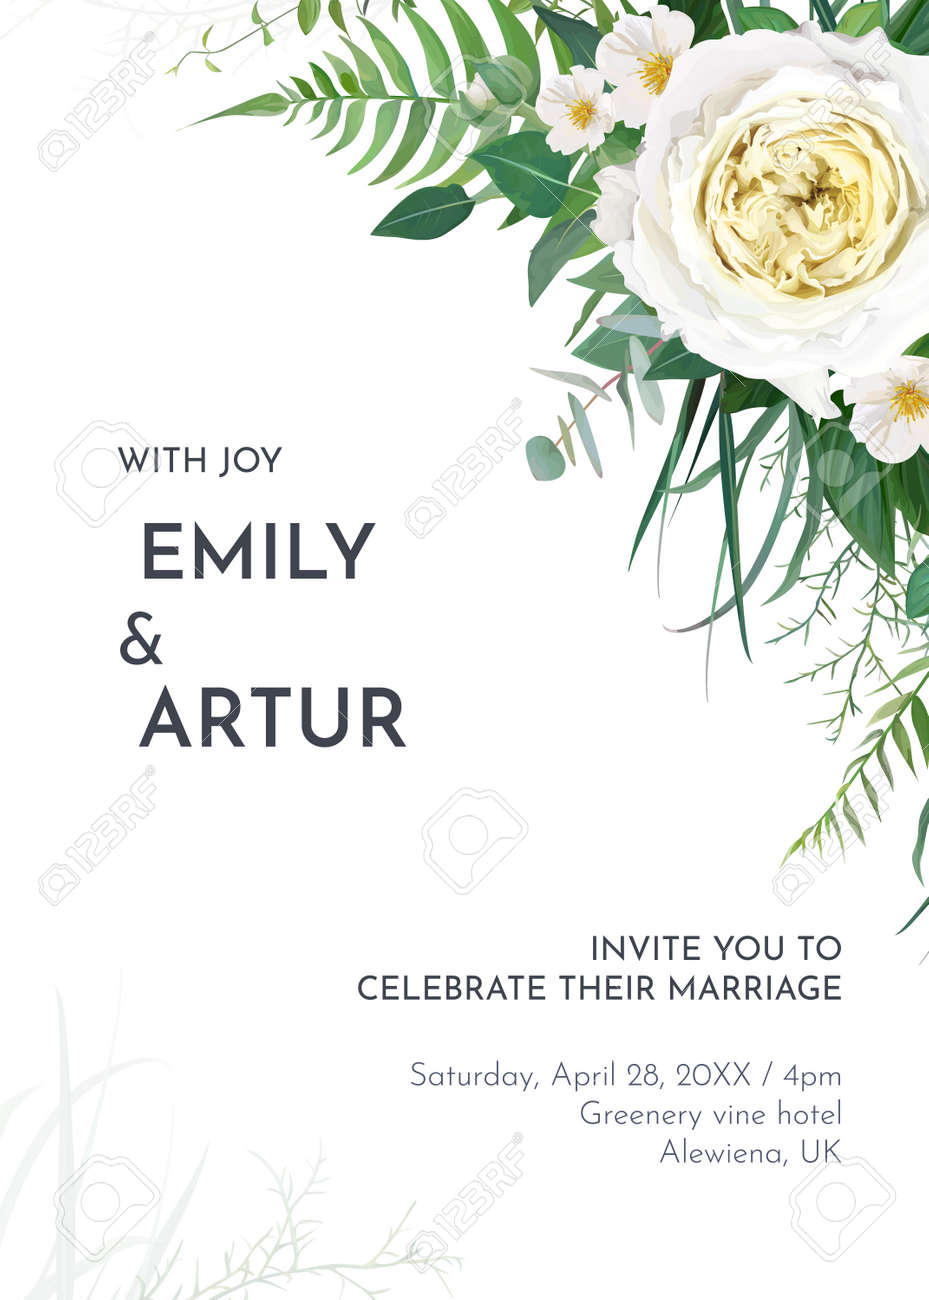 Tropical greenery floral wedding invite, save the date card template. Green fern leaves, tender eucalyptus, light yellow roses and white camellia flowers bouquet border. Editable watercolor vector art - 166355208